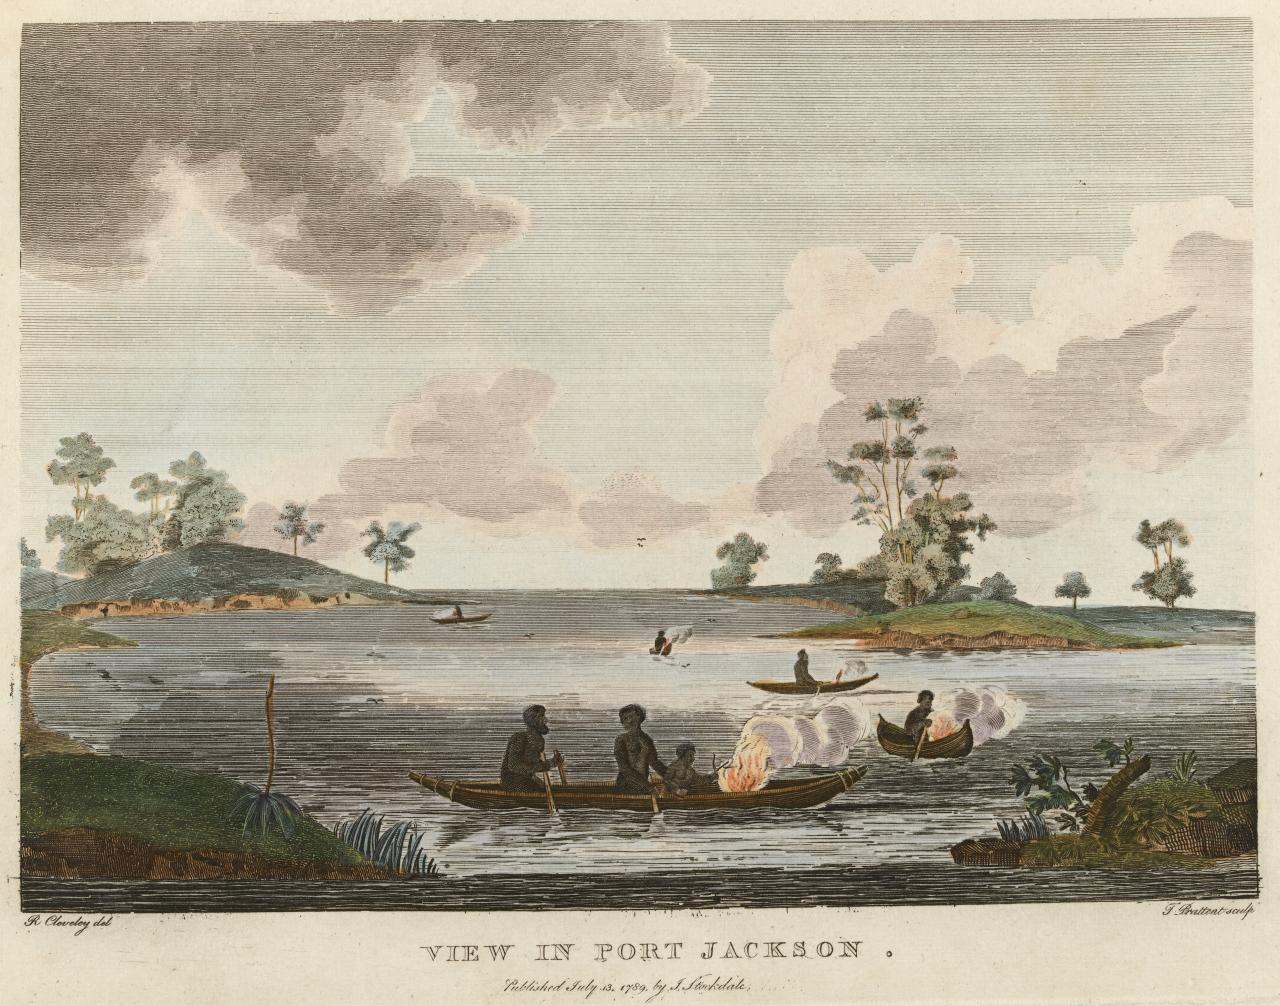 View in Port Jackson